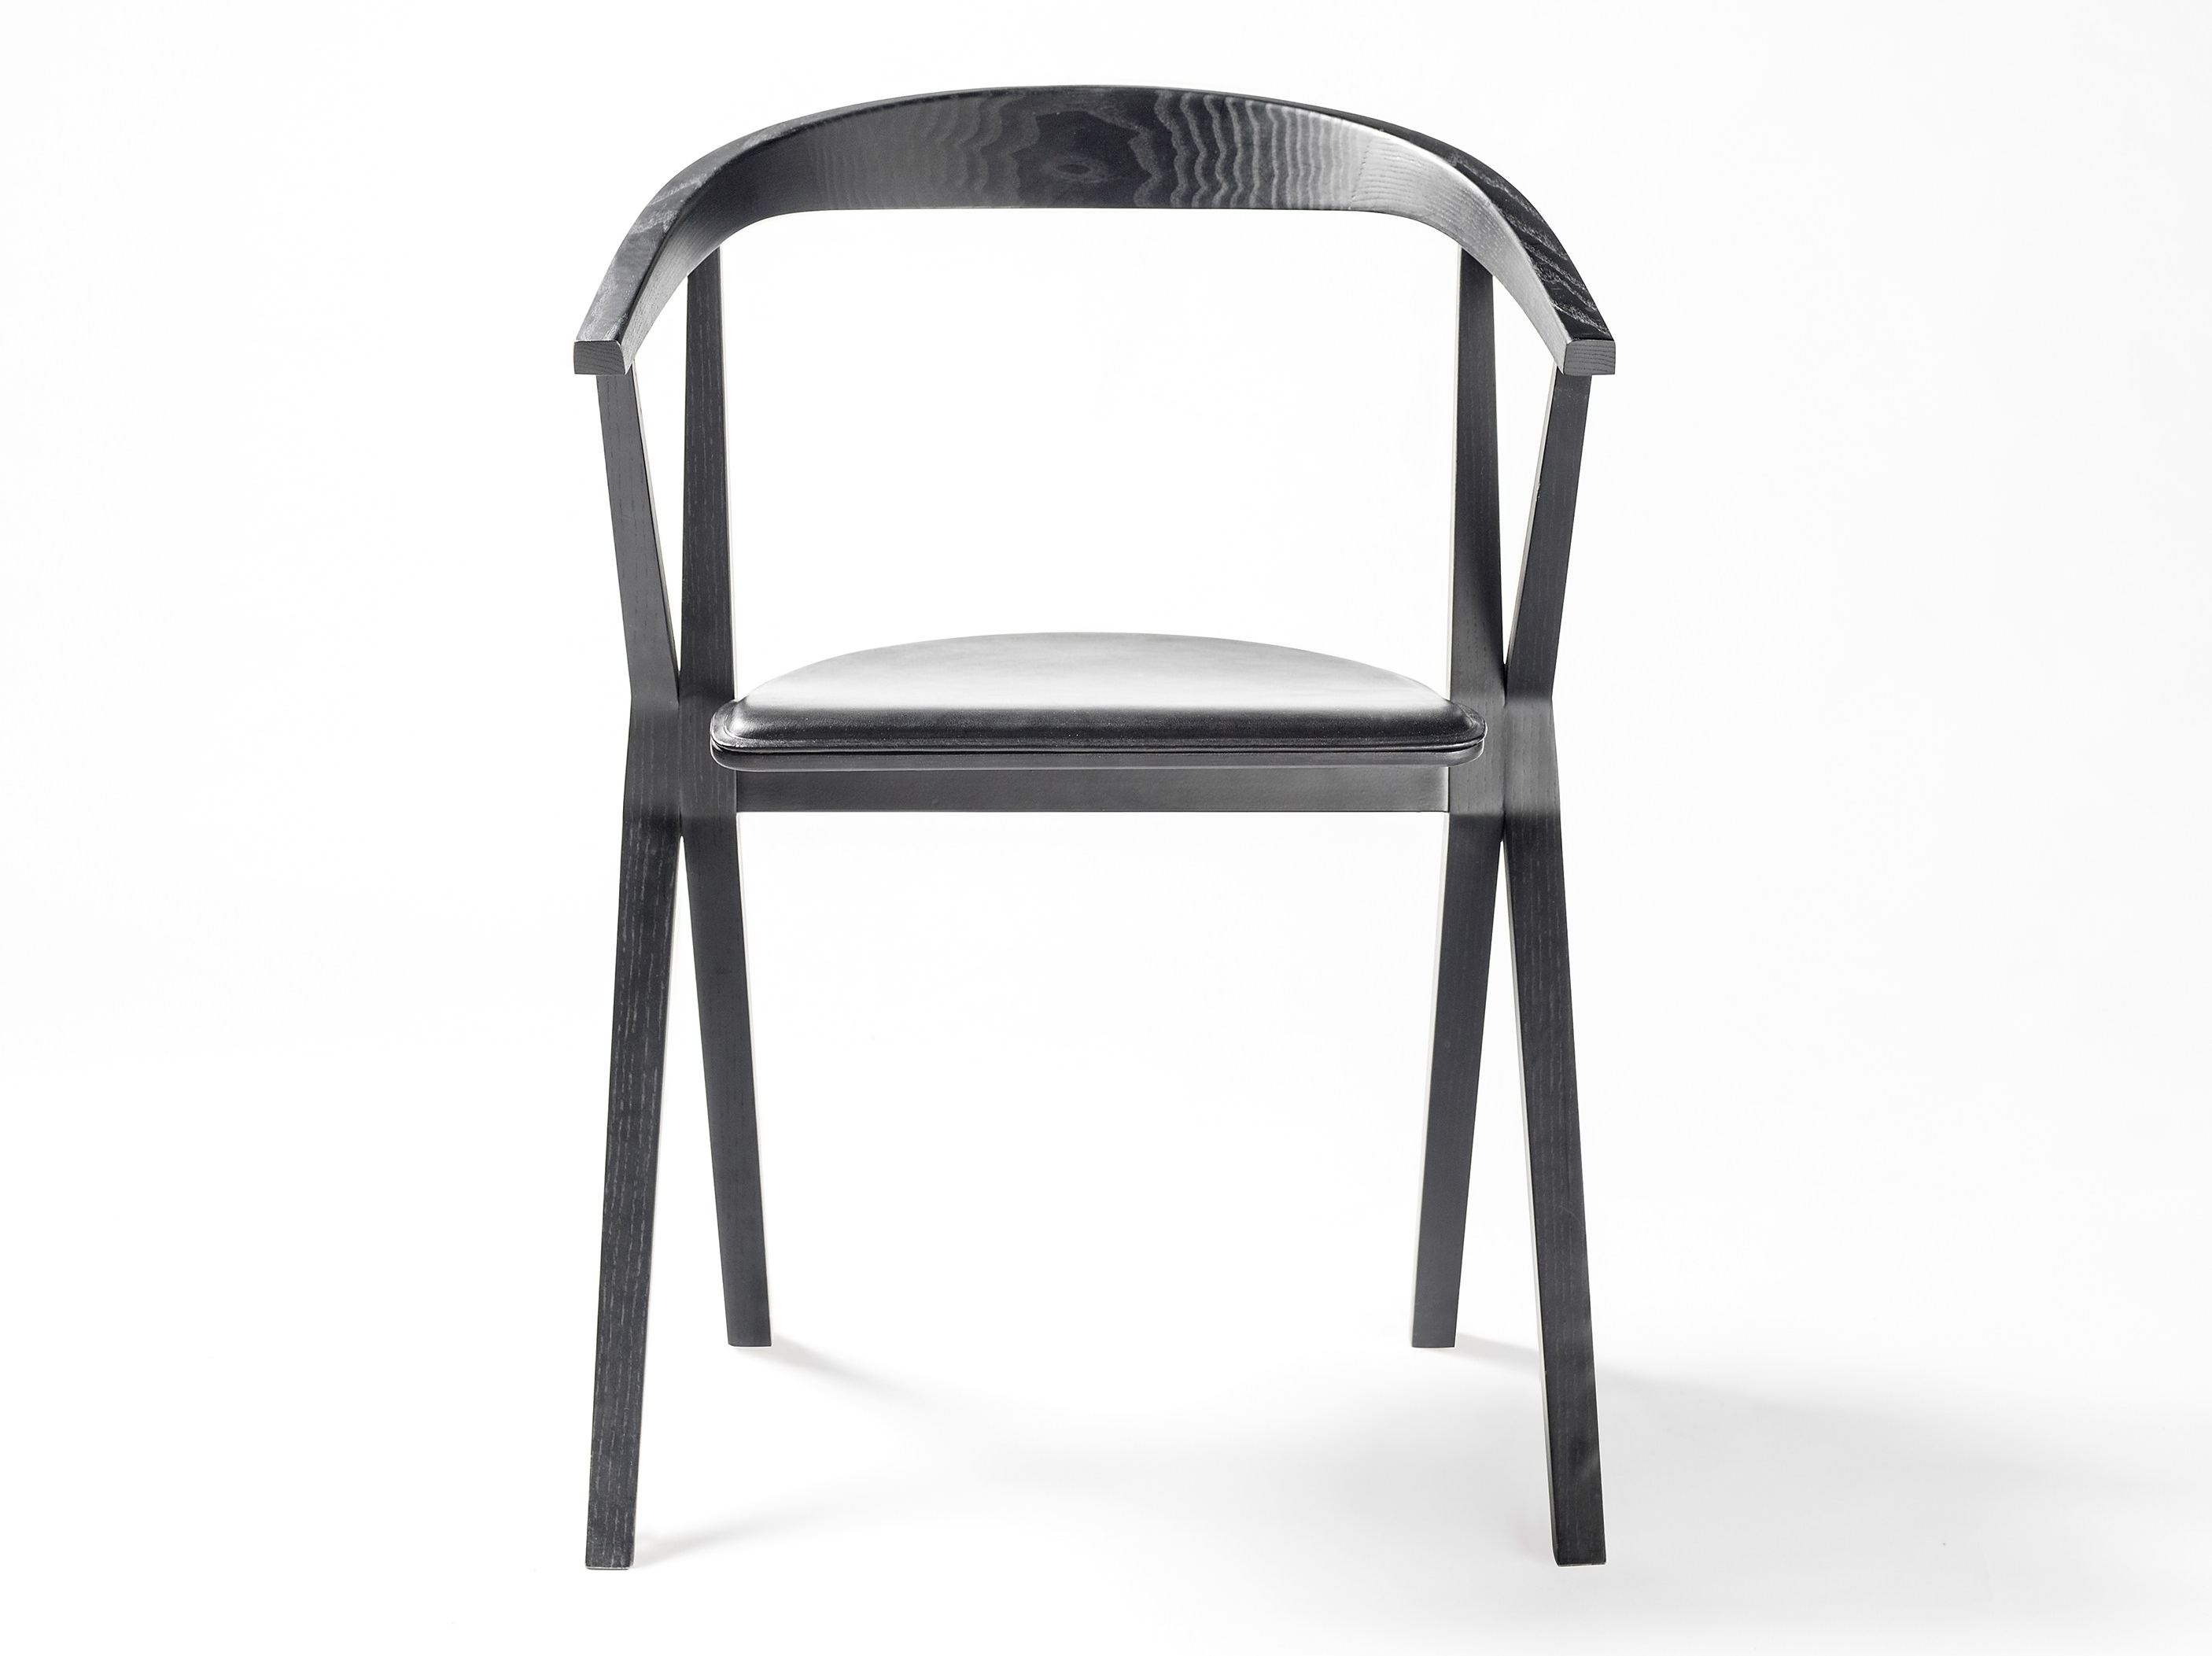 chair design bd clear computer b by barcelona konstantin grcic